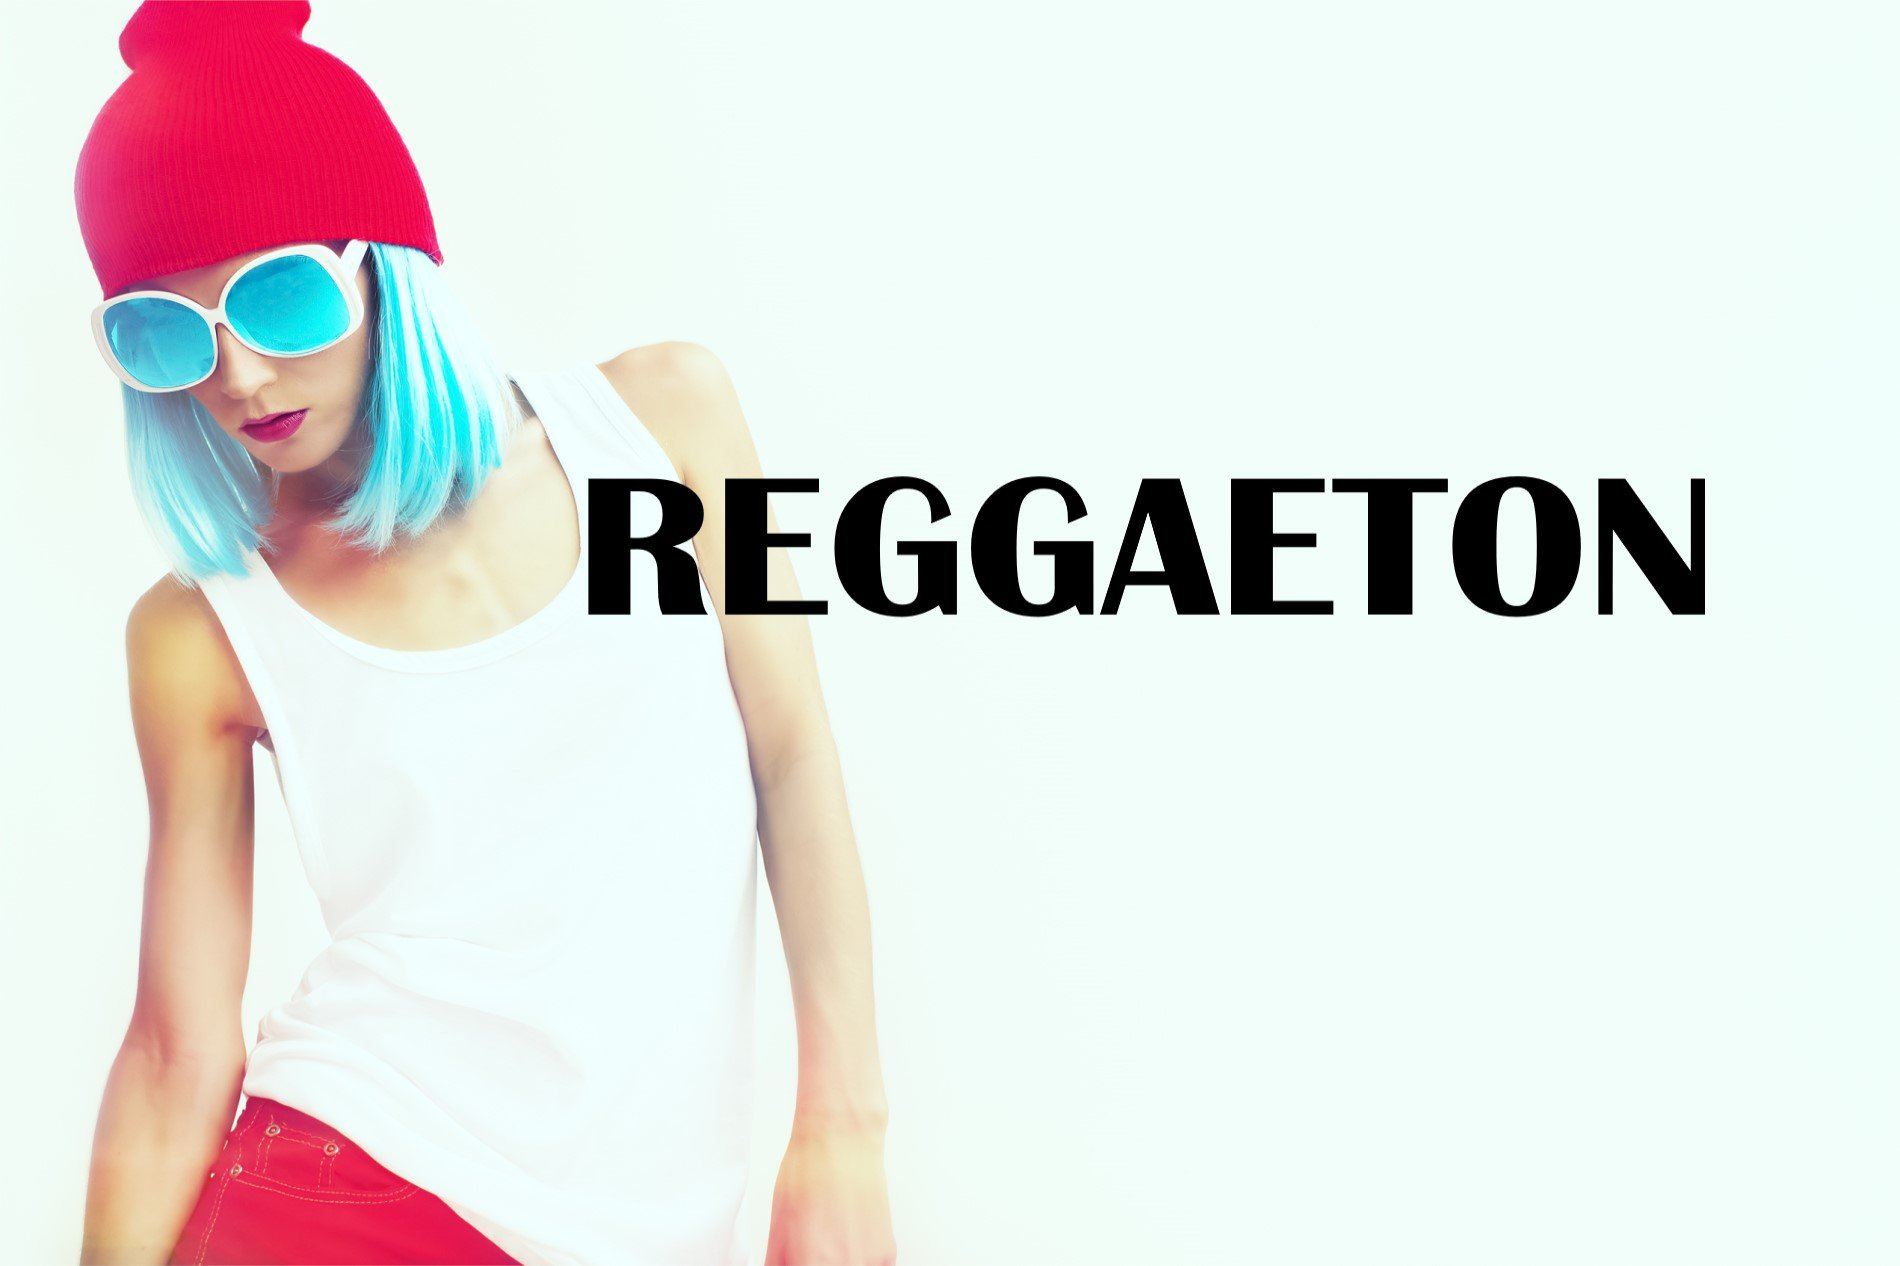 CLASSIFICA REGGAETON